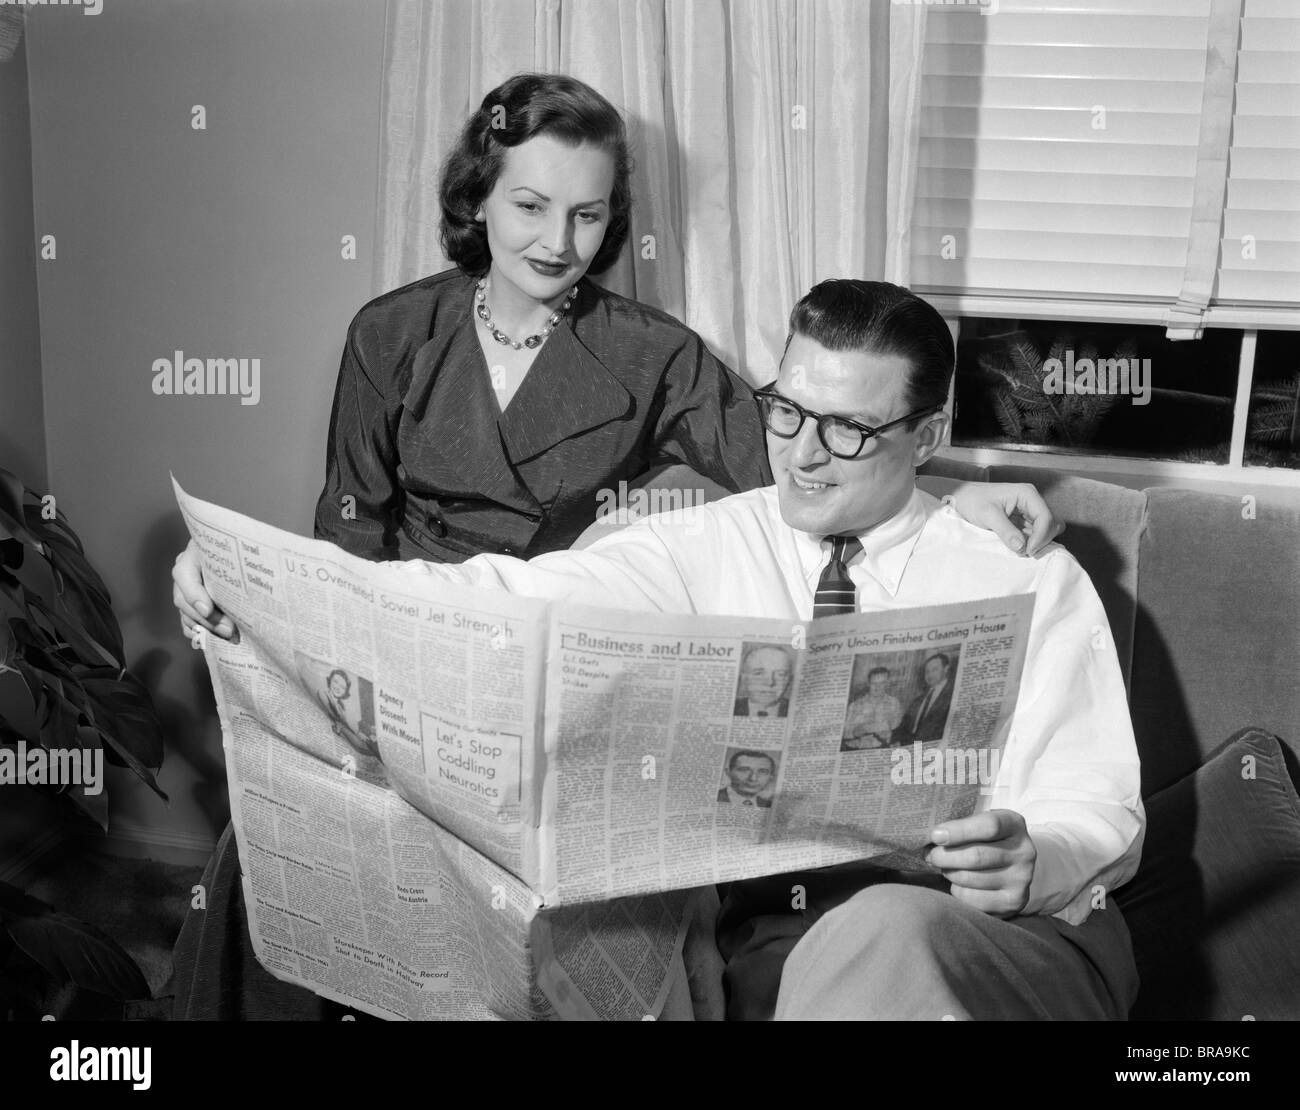 1950s COUPLE MAN WOMAN READING NEWSPAPER Stock Photo ...